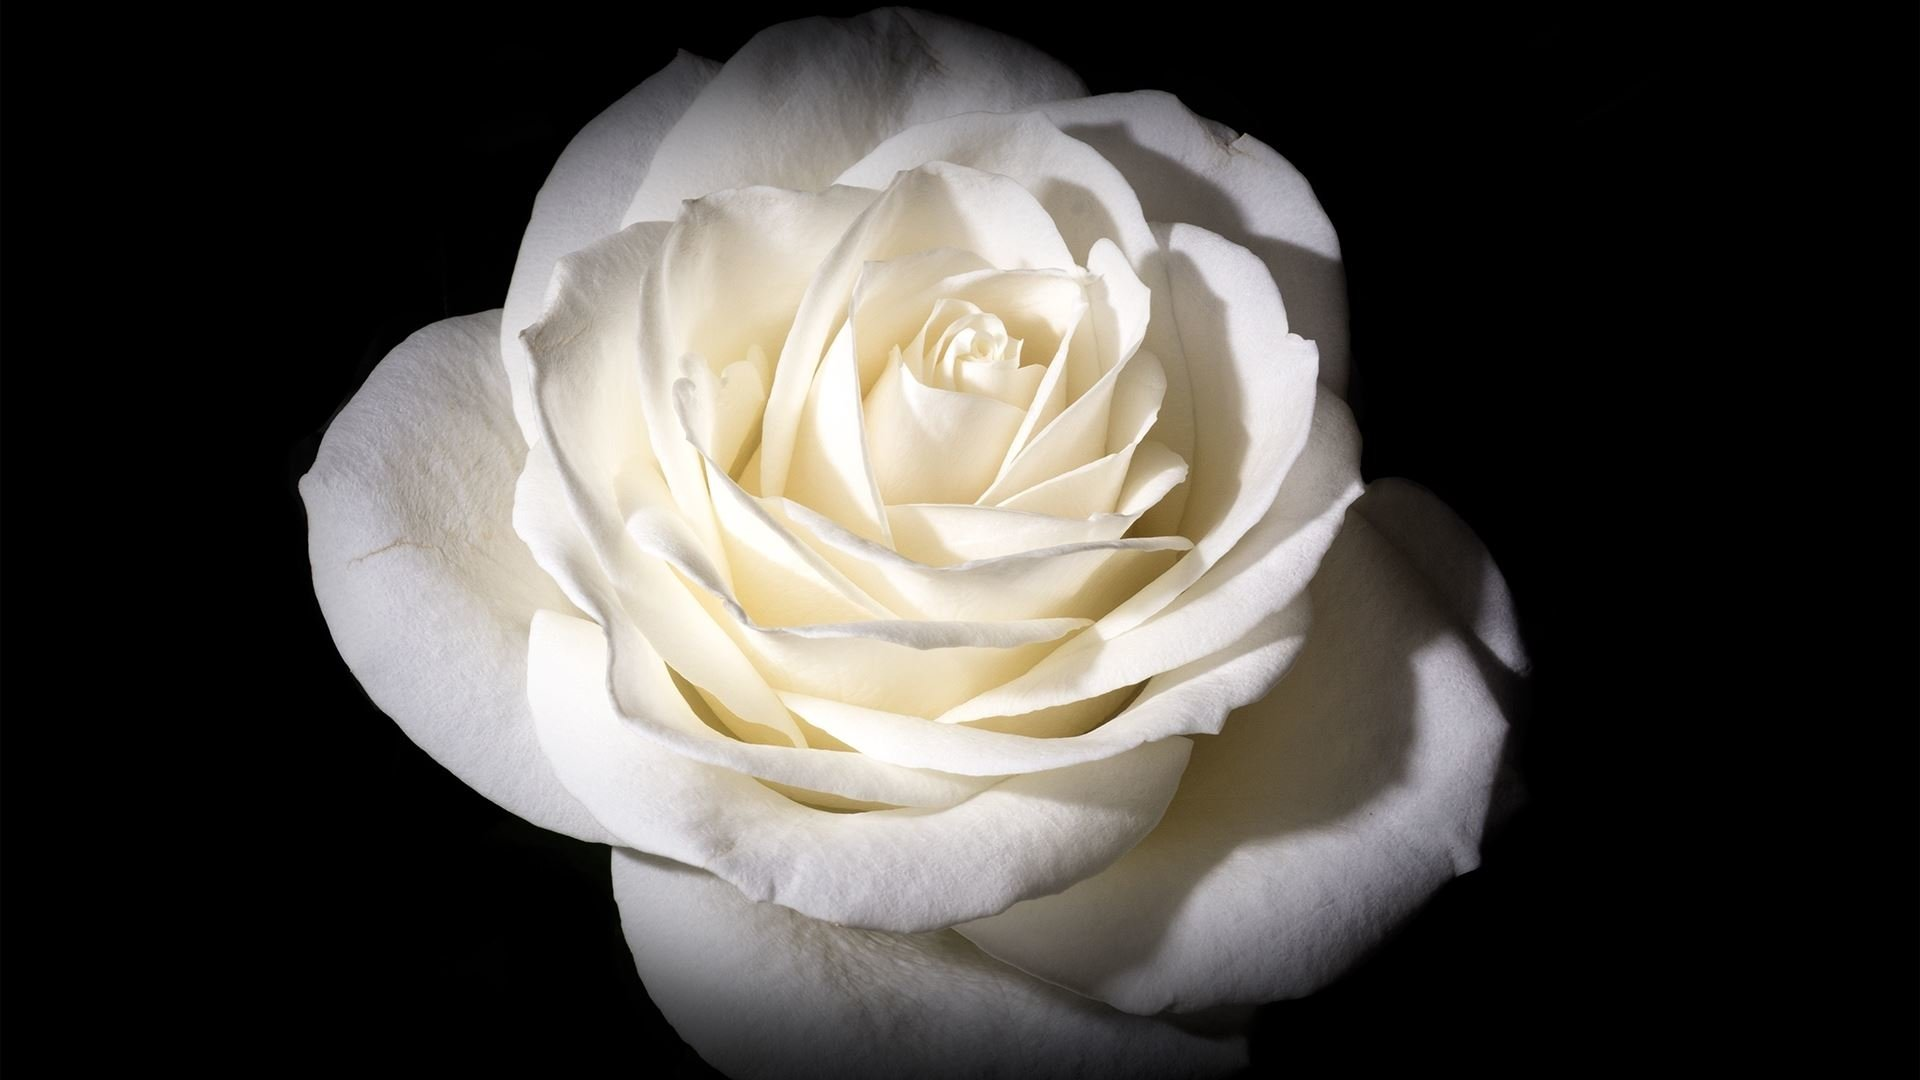 Earth - Rose  Earth Flower White Flower White Rose Wallpaper